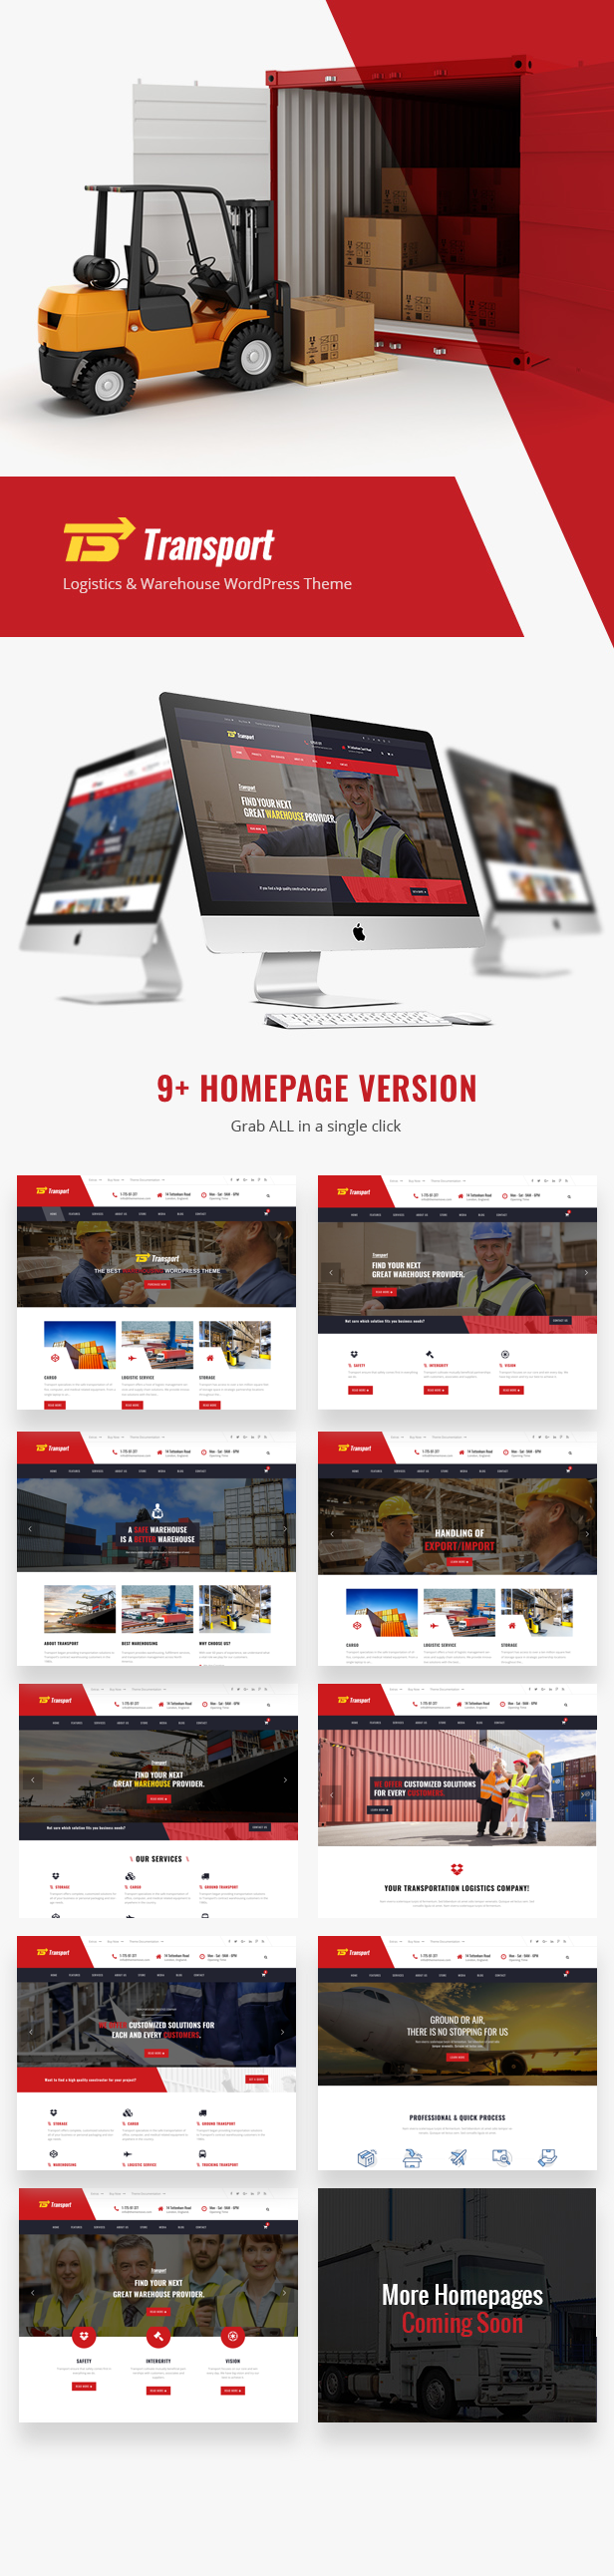 Transport Logistic and Warehouse WordPress Theme - 9 Homepages